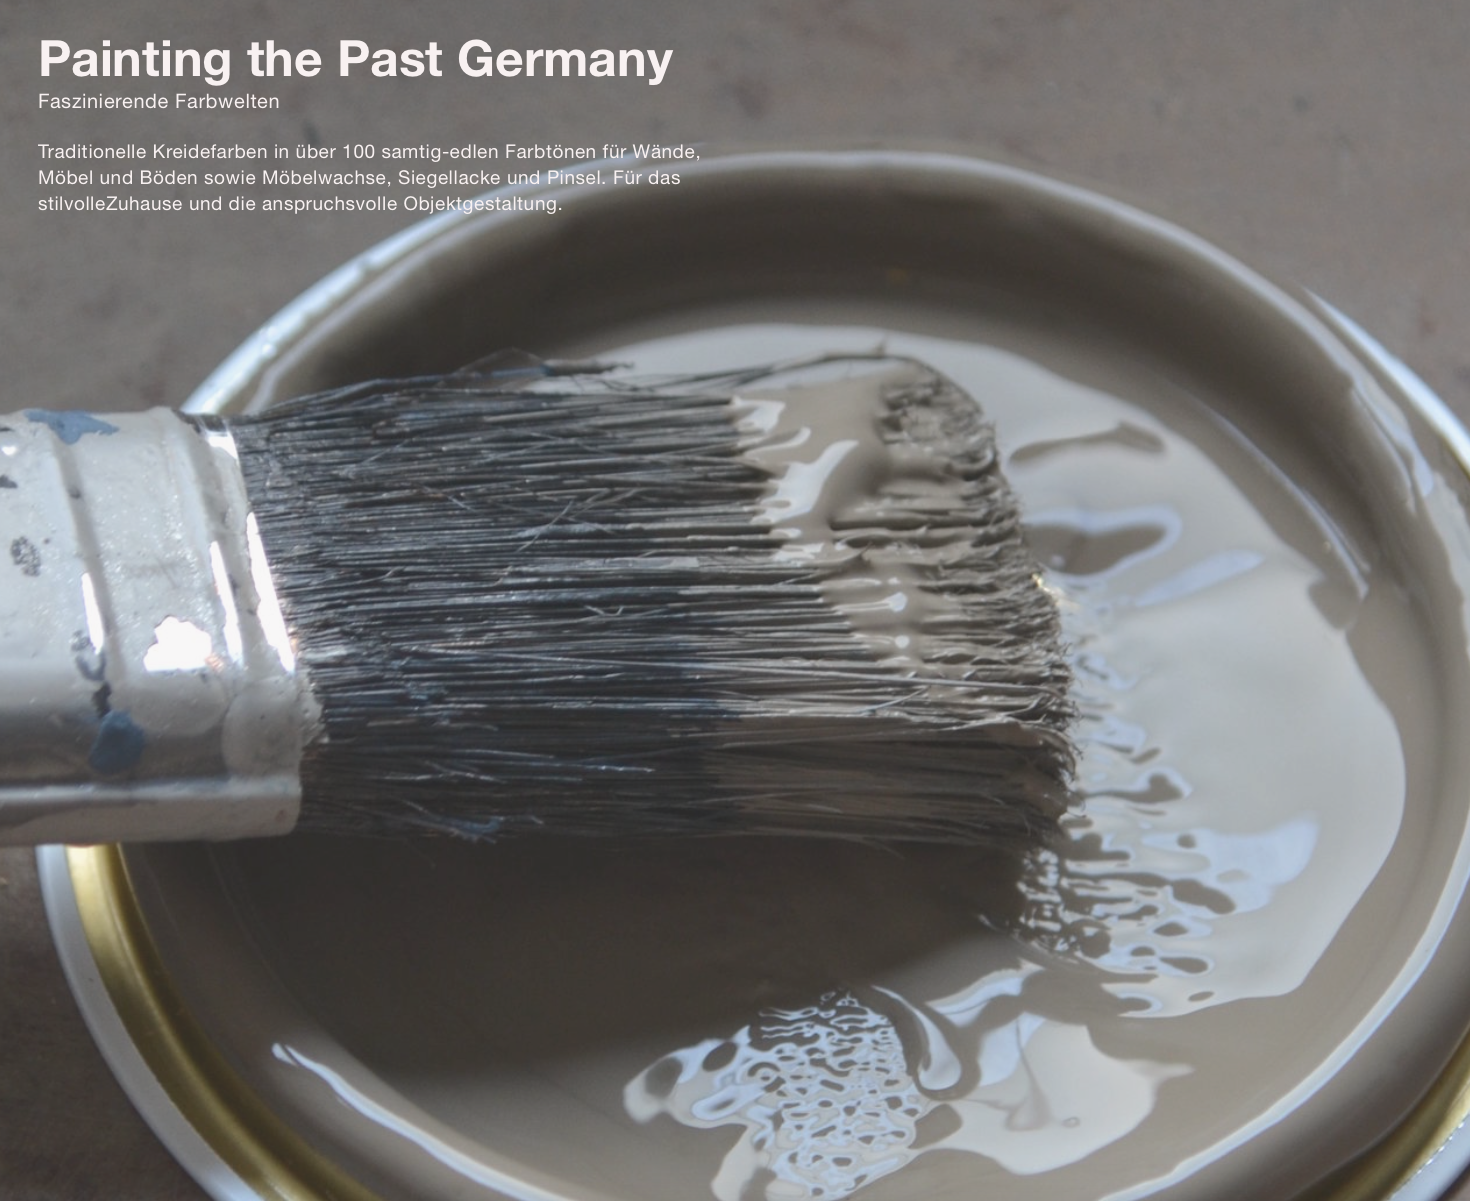 www.paintingthepast-germany.com